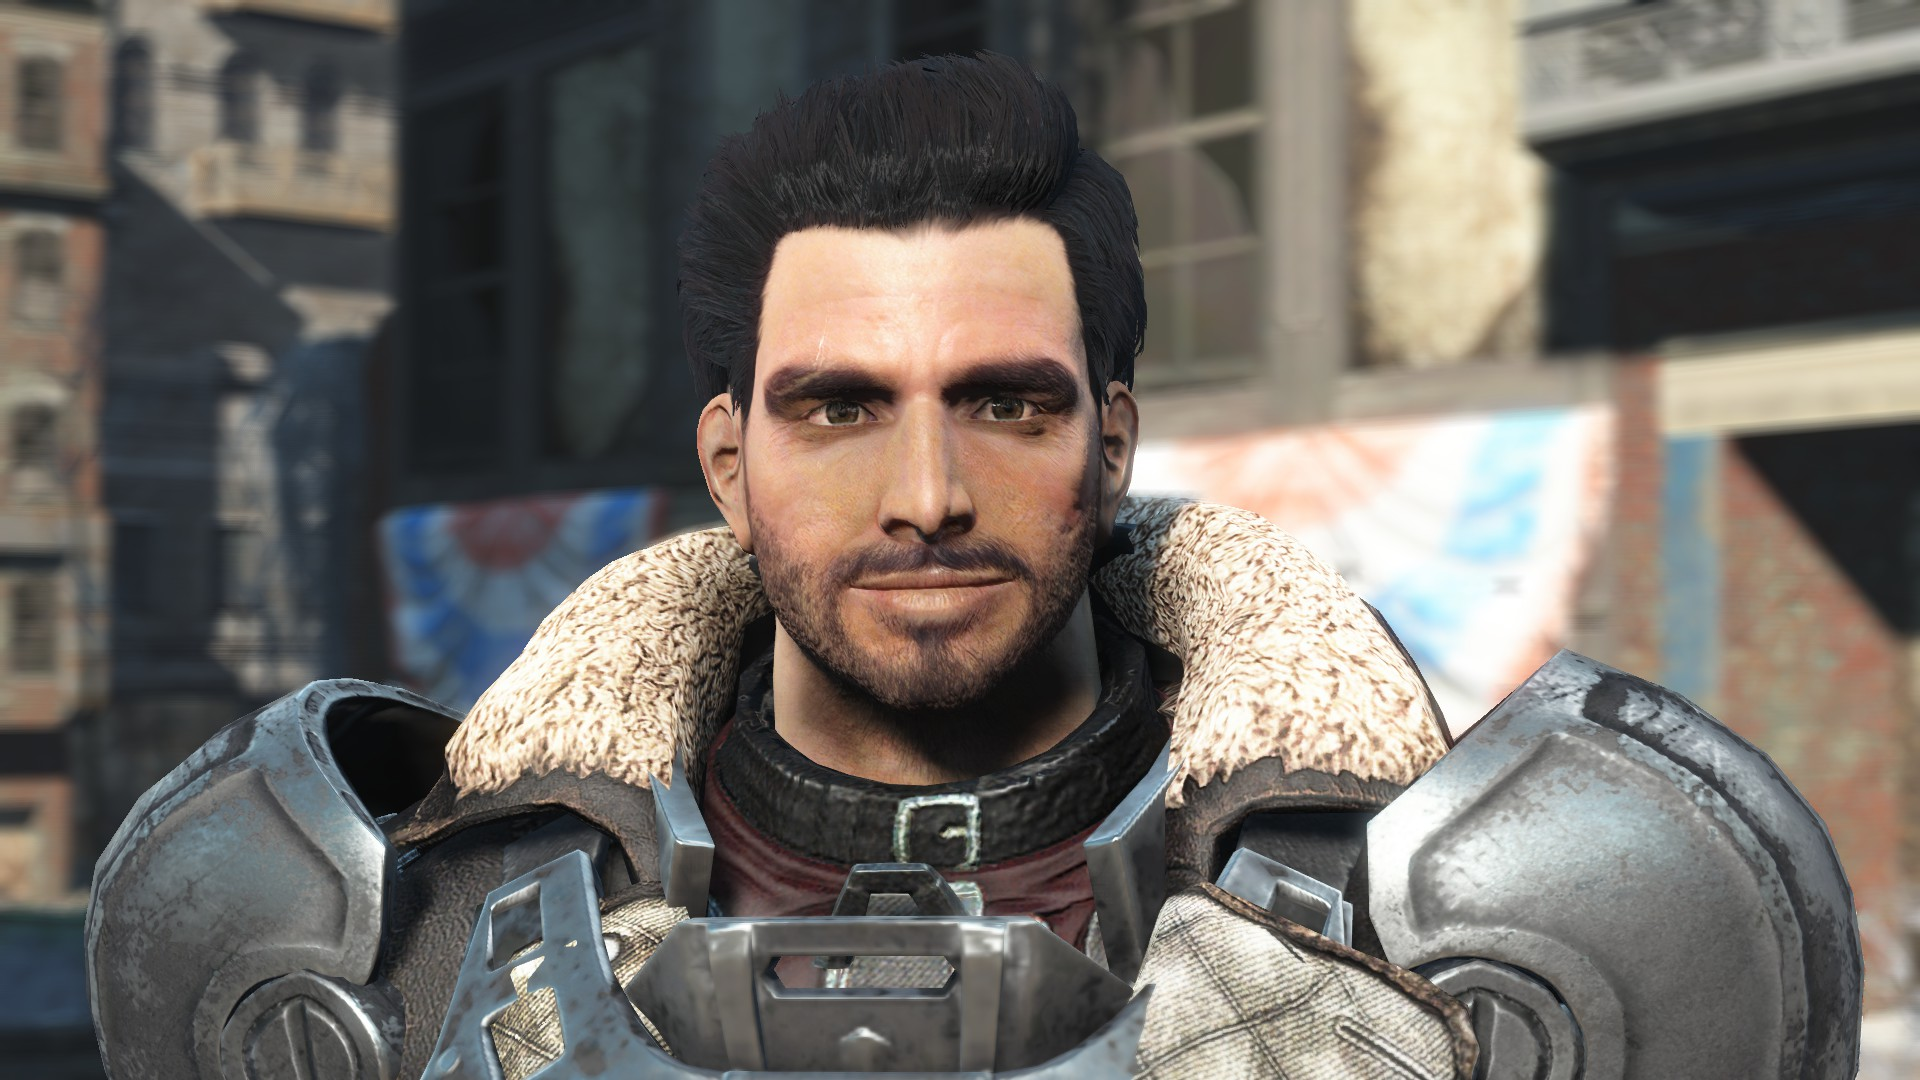 Paladin Danse Face Clean Up At Fallout 4 Nexus Mods And